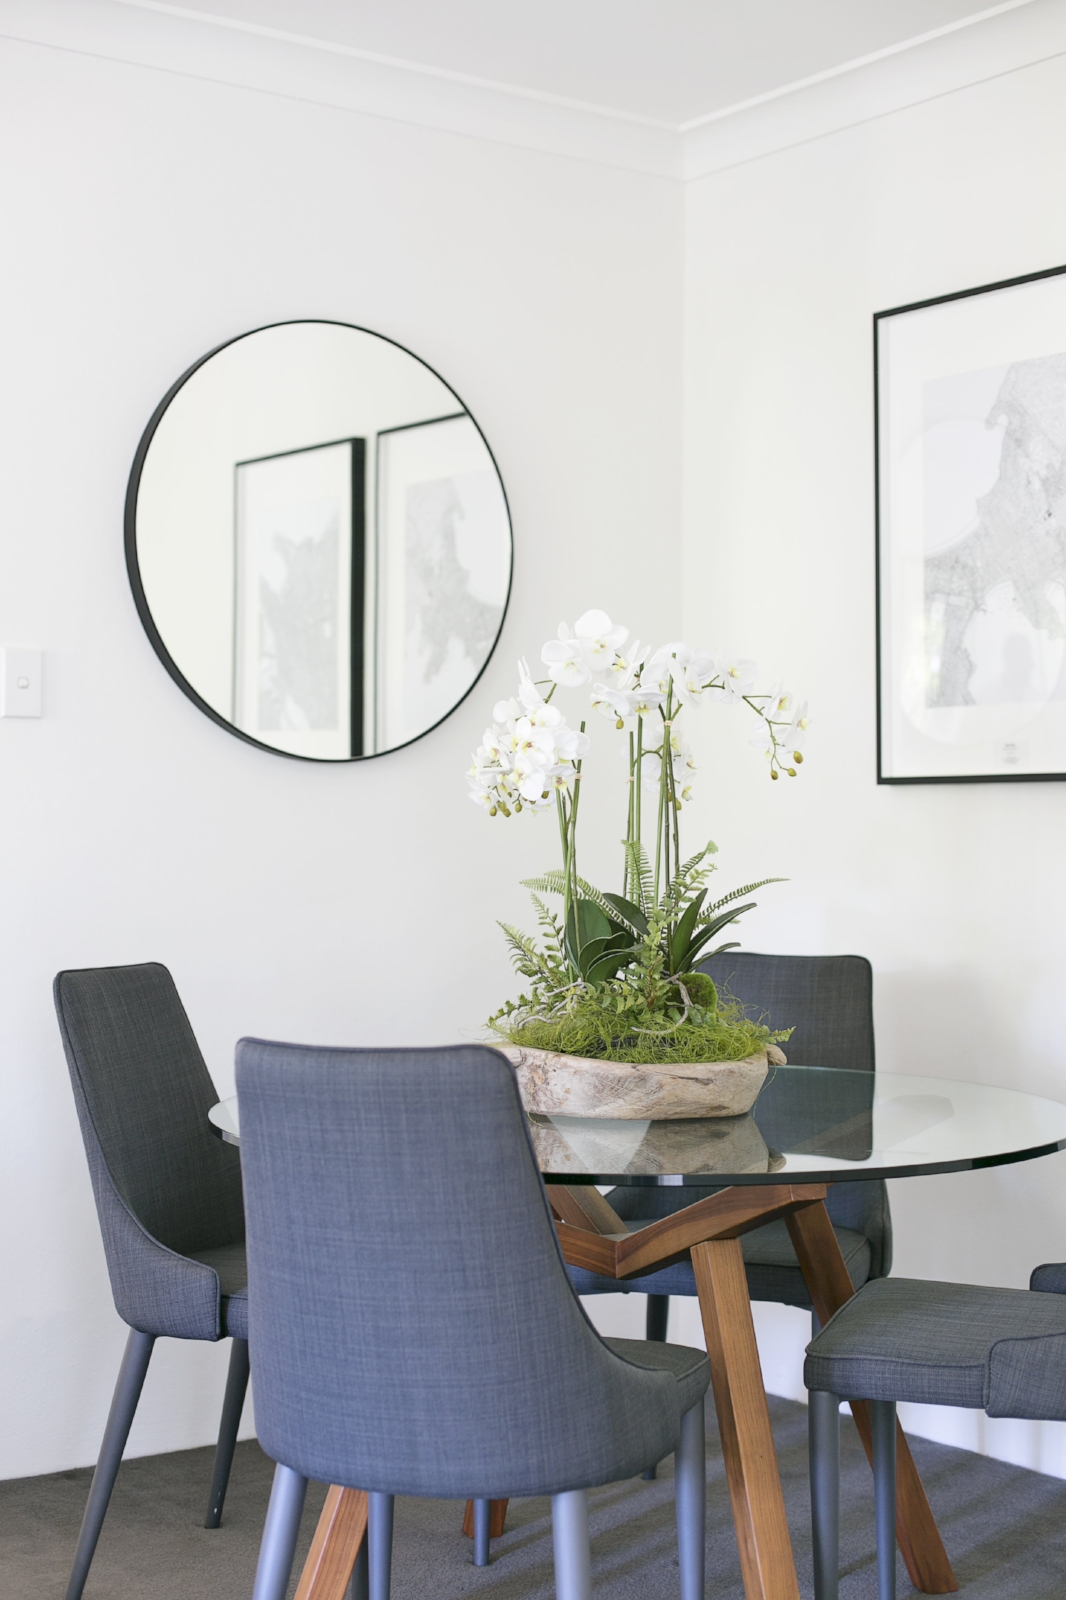 howard_ave_deewhy_dining_home_styling_5.jpg